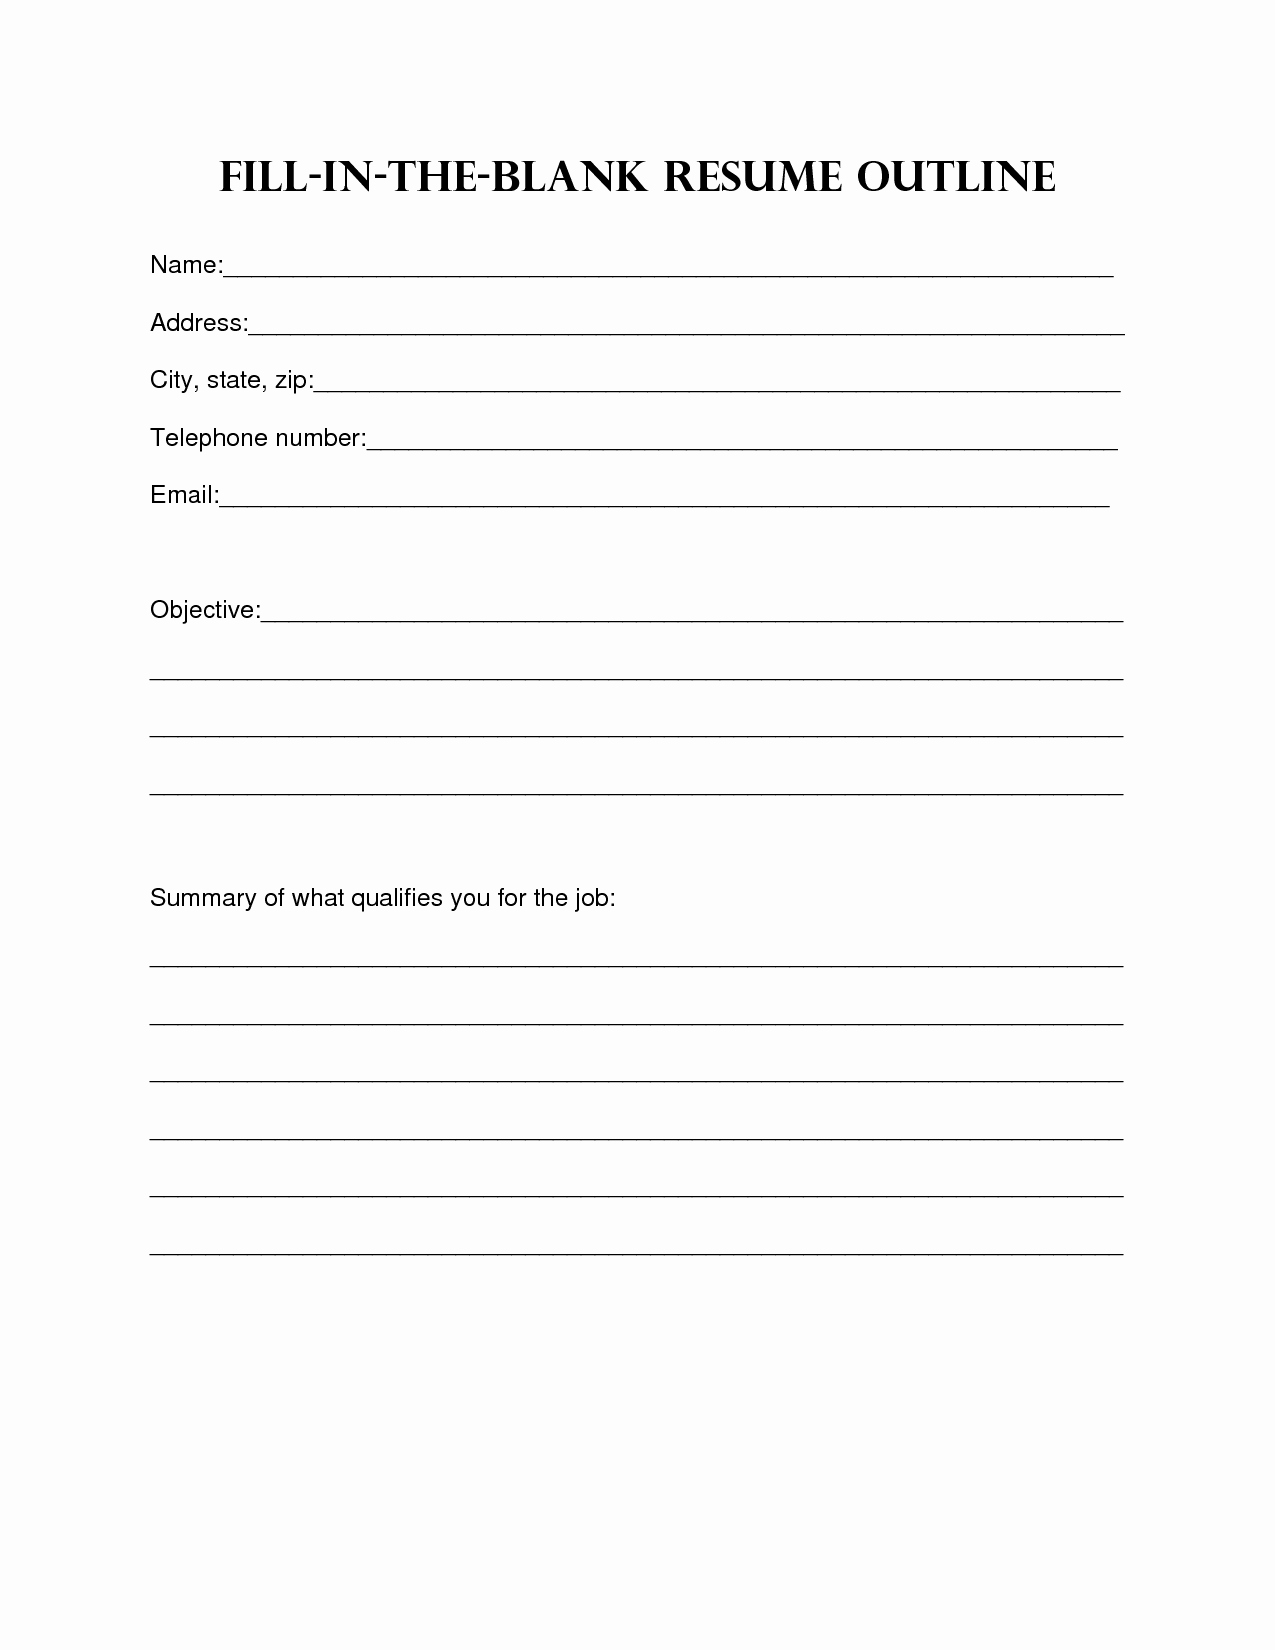 Resumes Fill In the Blanks Elegant 8 Best Of Printable Outline format Blank Essay